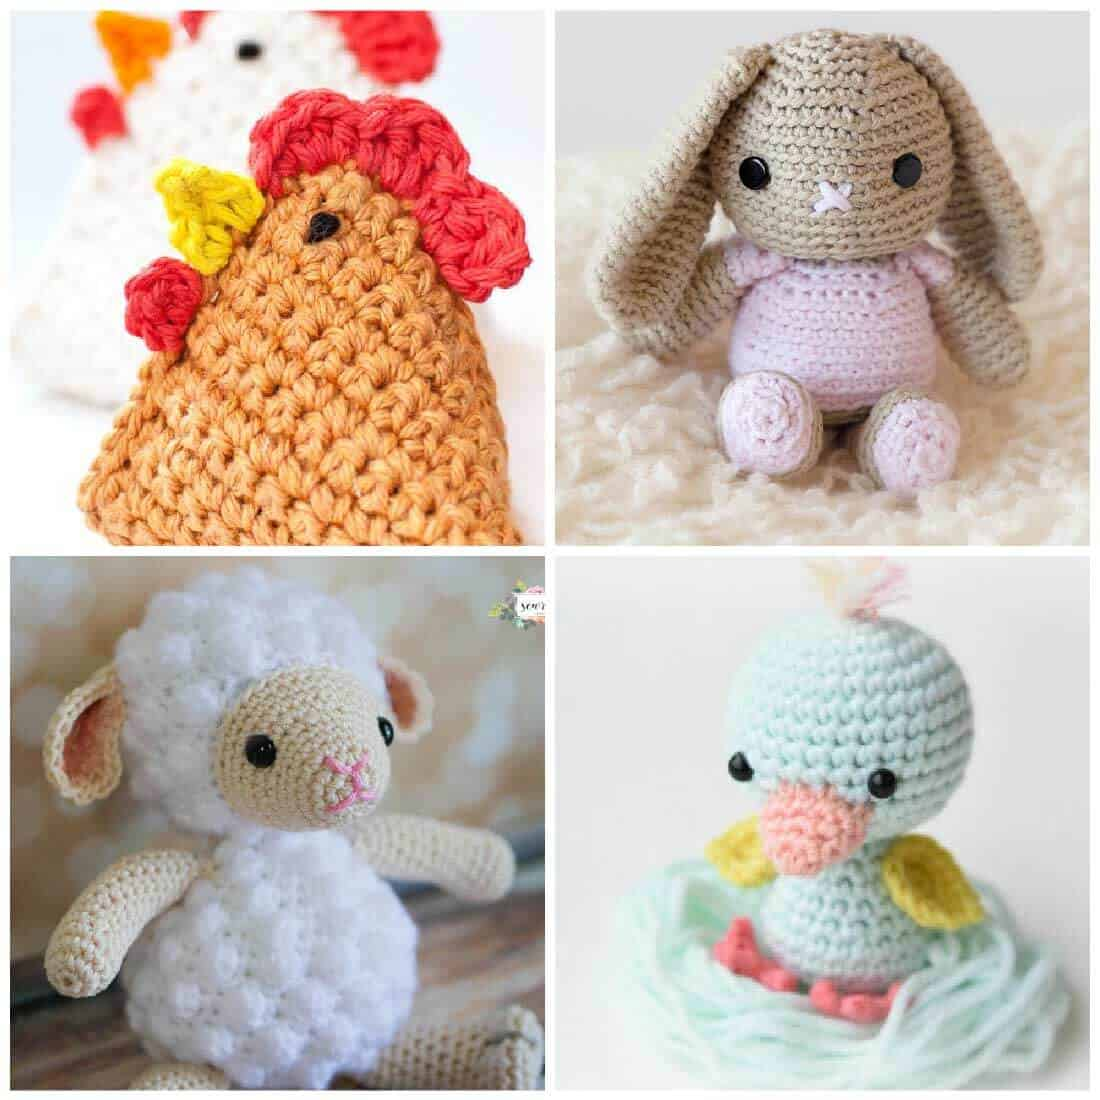 Free Crochet Toy Patterns For Babies Interesting Design Inspiration